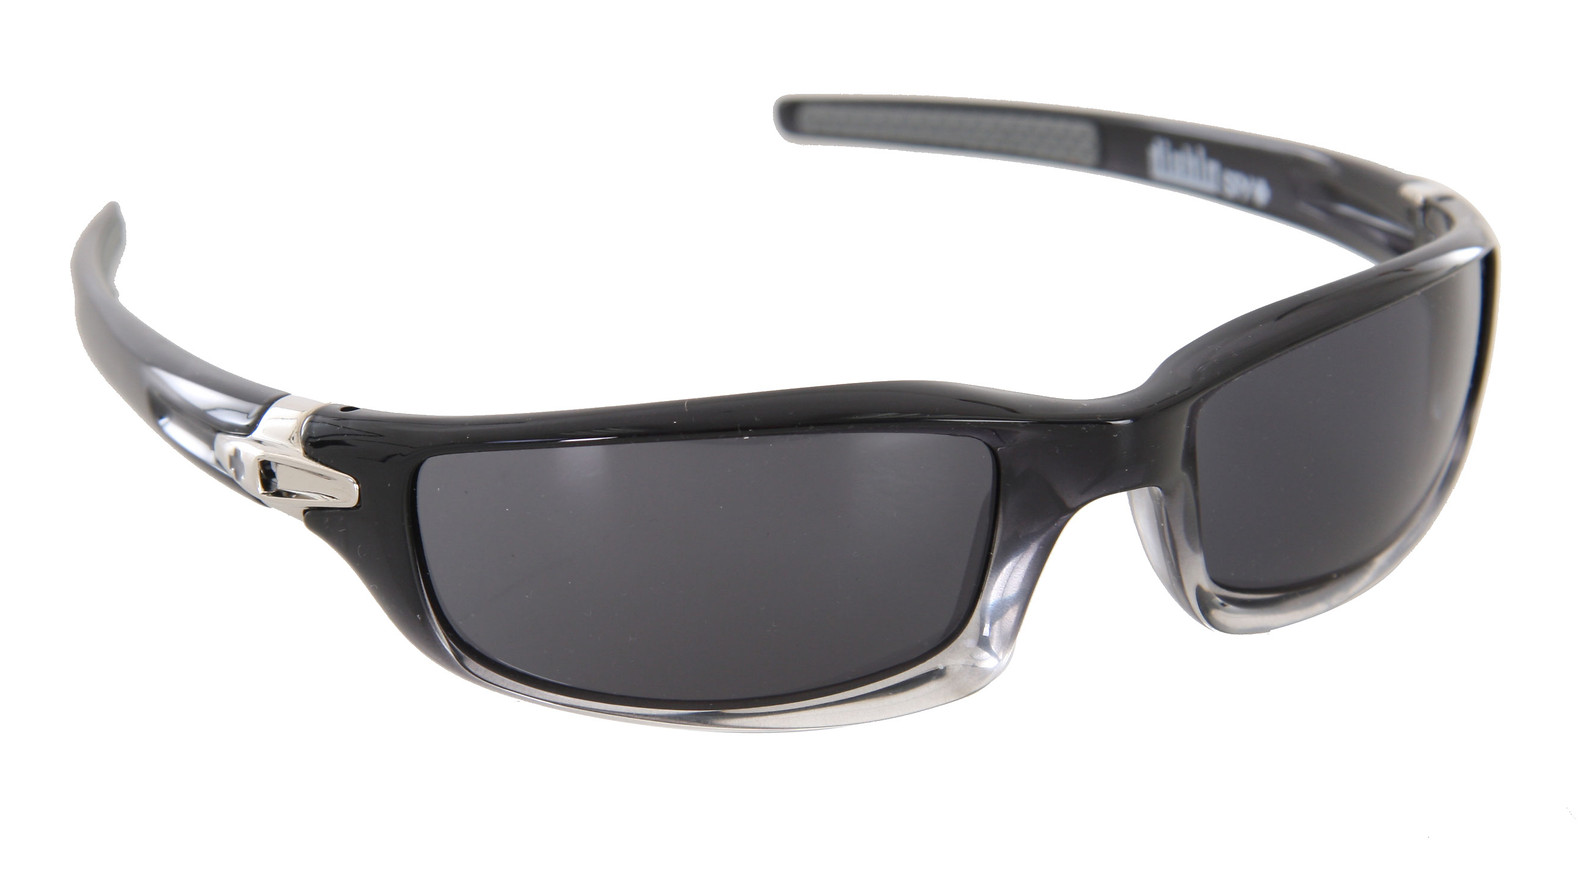 Spy Optic Spy Diablo Sunglasses Black Fade Grey Lens  spy-diablo-sngls-blkfadegry-10.jpg